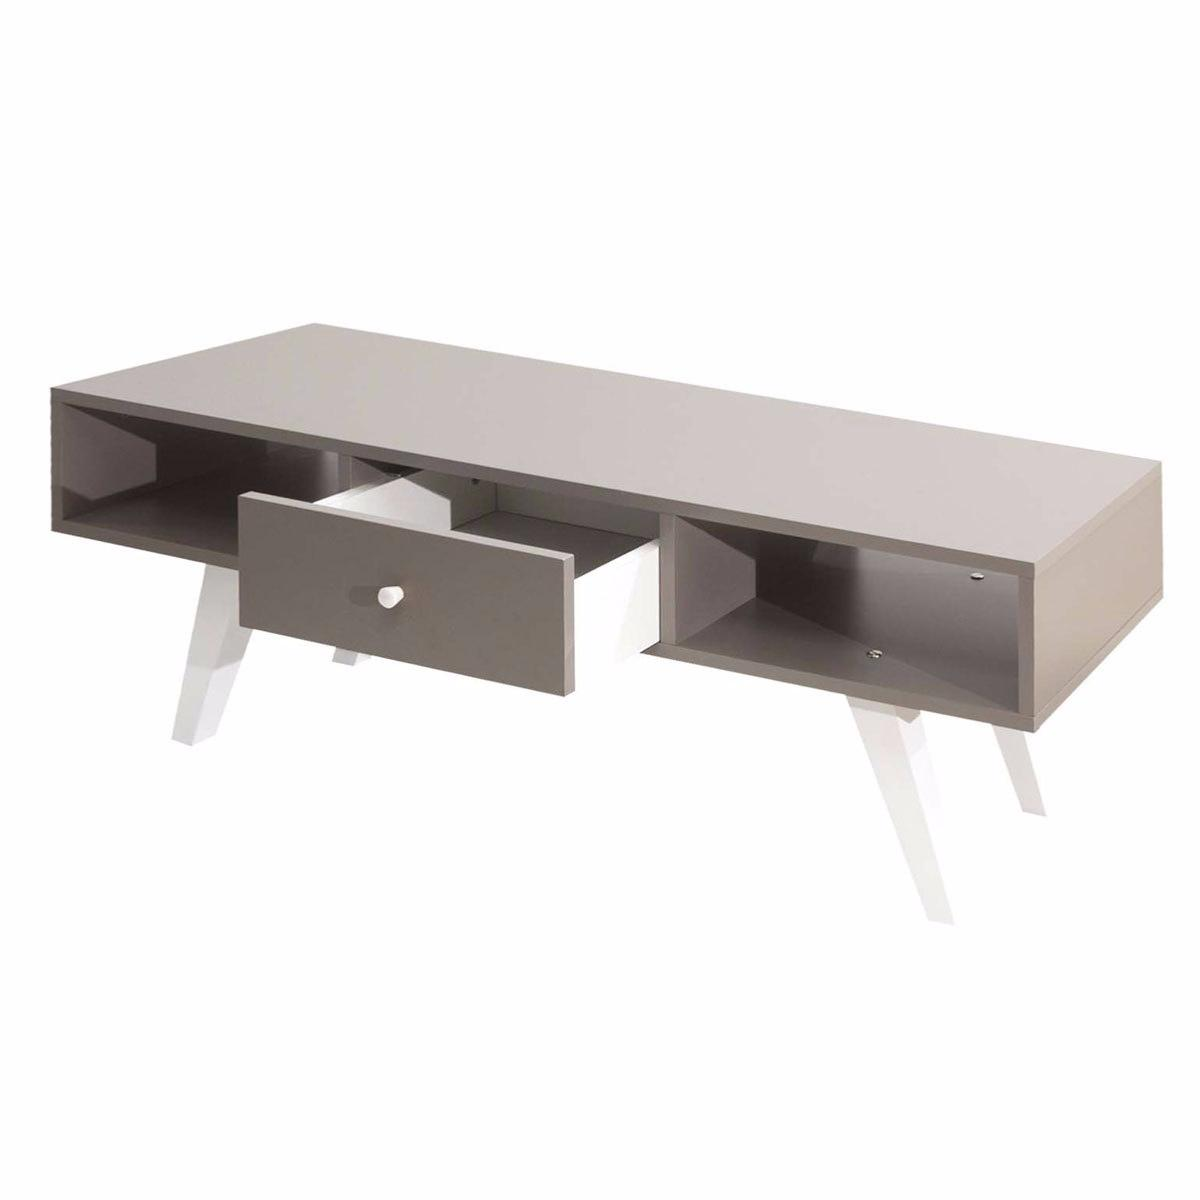 Meuble Tv Scandinave Taupe Blanc Cielterre Commerce # Meuble Tv Taupe